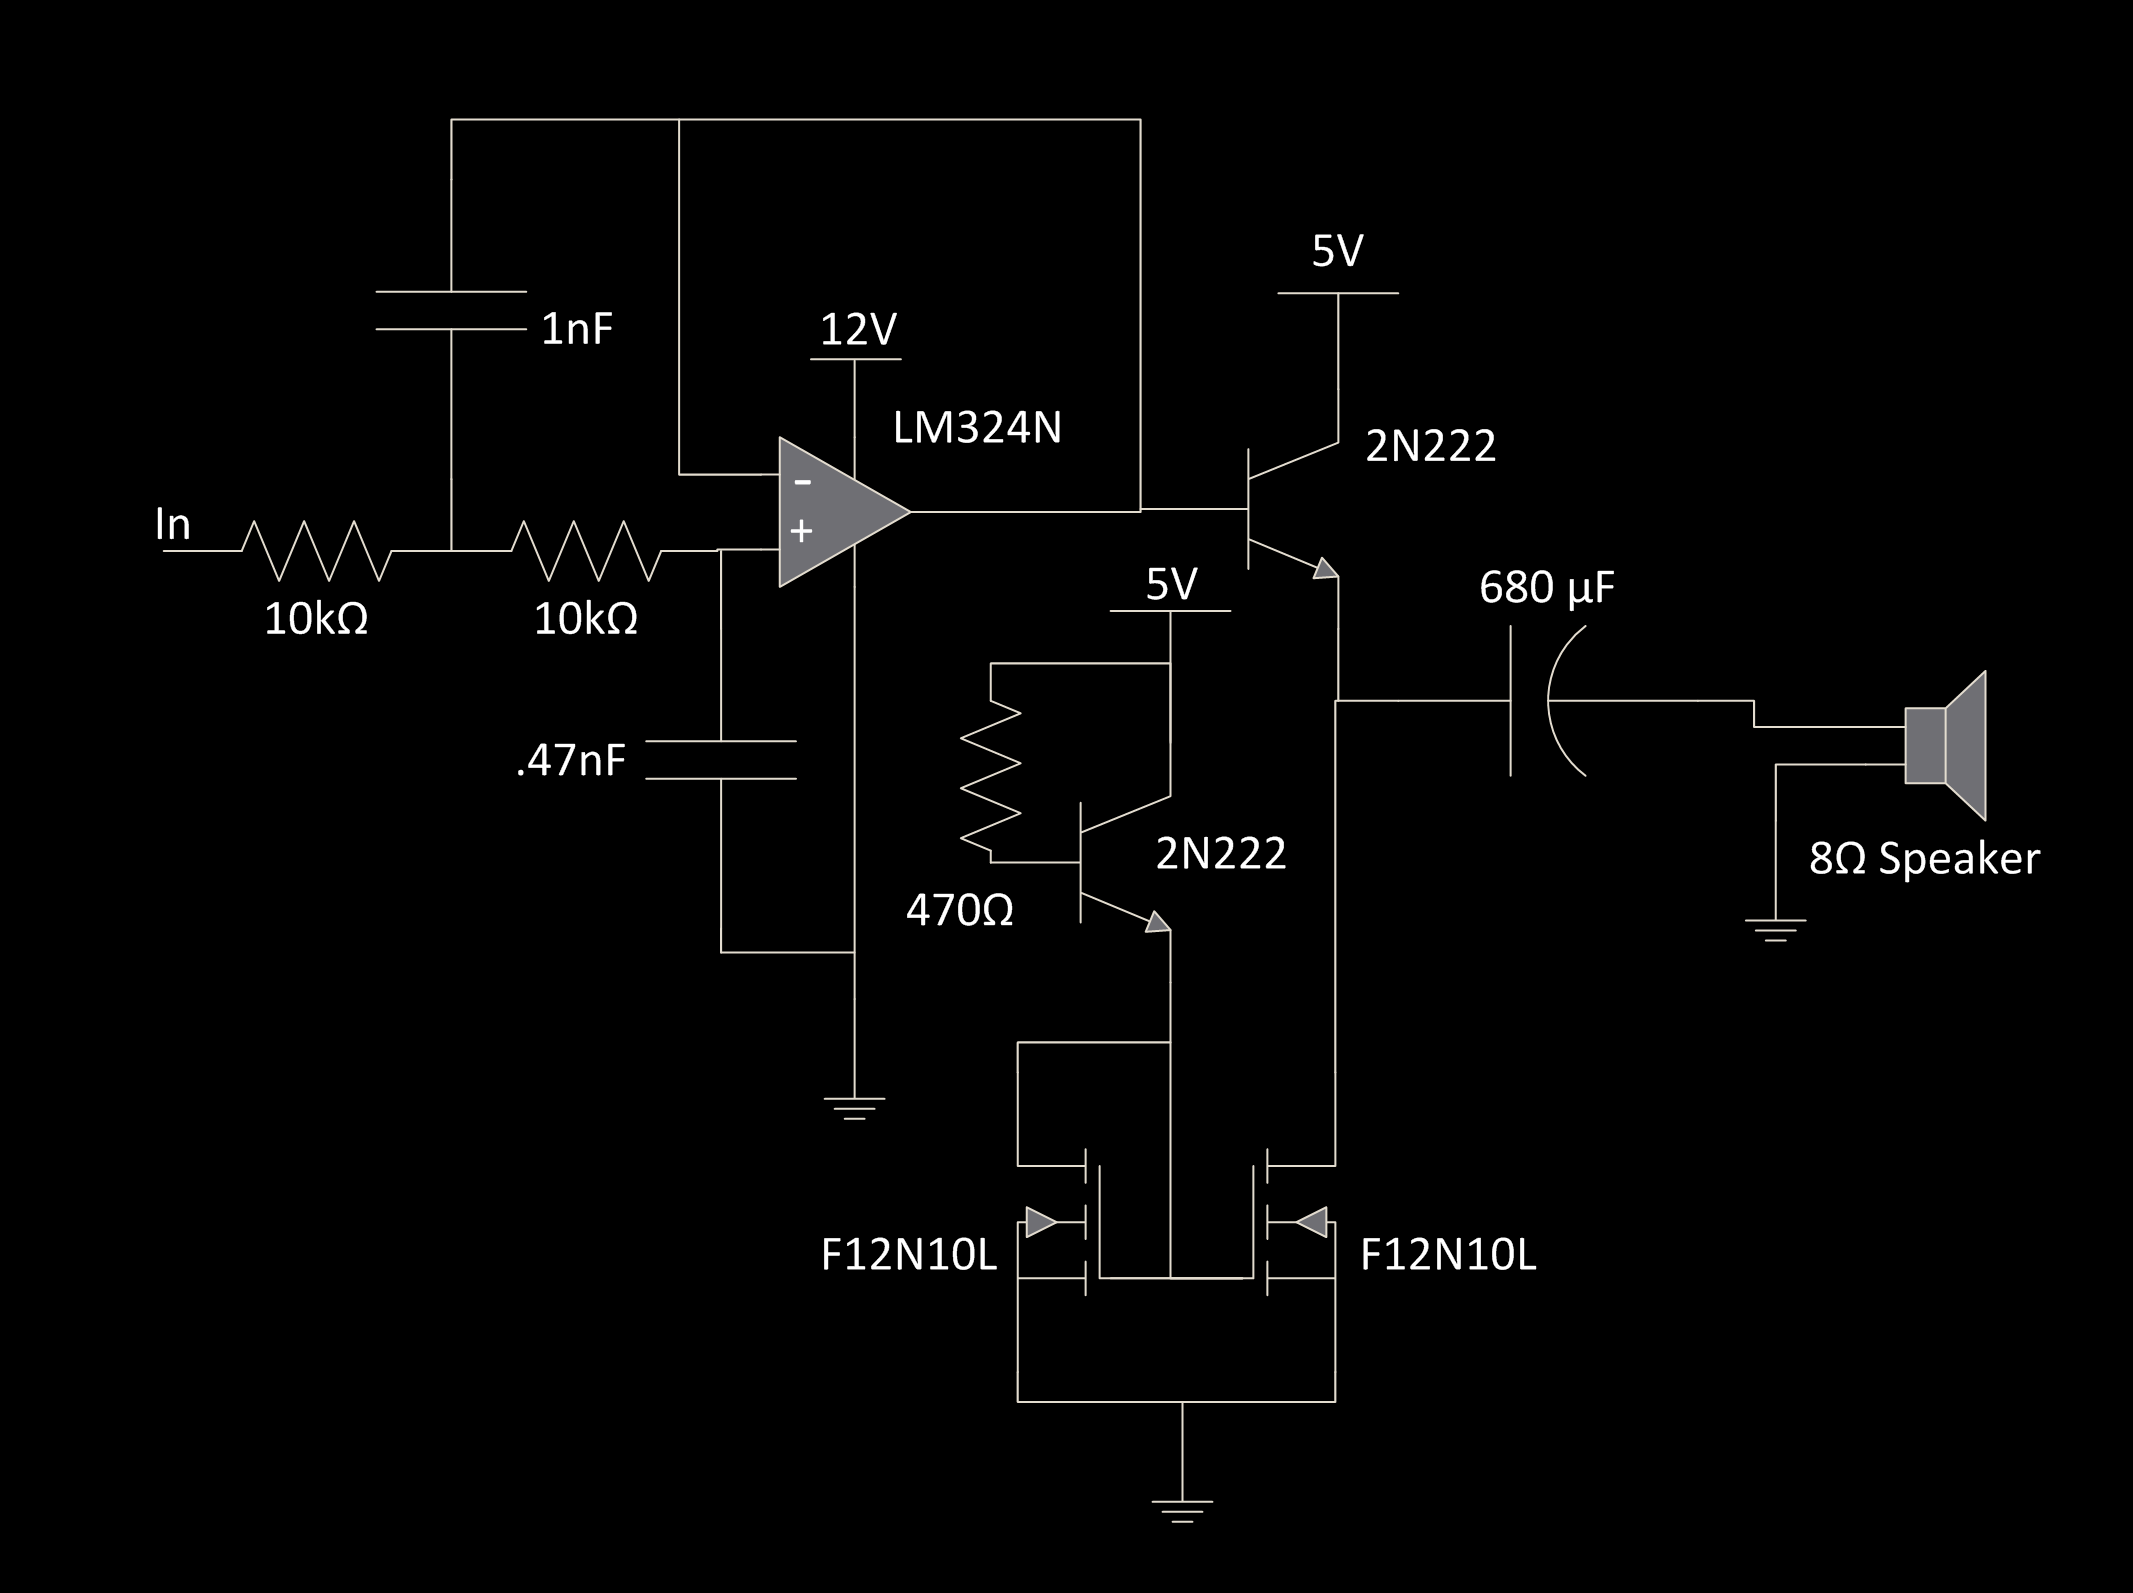 Ece 4760 Final Project Phased Array Speaker System Pulse Counter Switch Circuit Audiocircuit Diagram Although A Dac Can Produce Sine Wave By Producing The Analog Values There Is Still Quantization Noise Produced Since Output Of Not